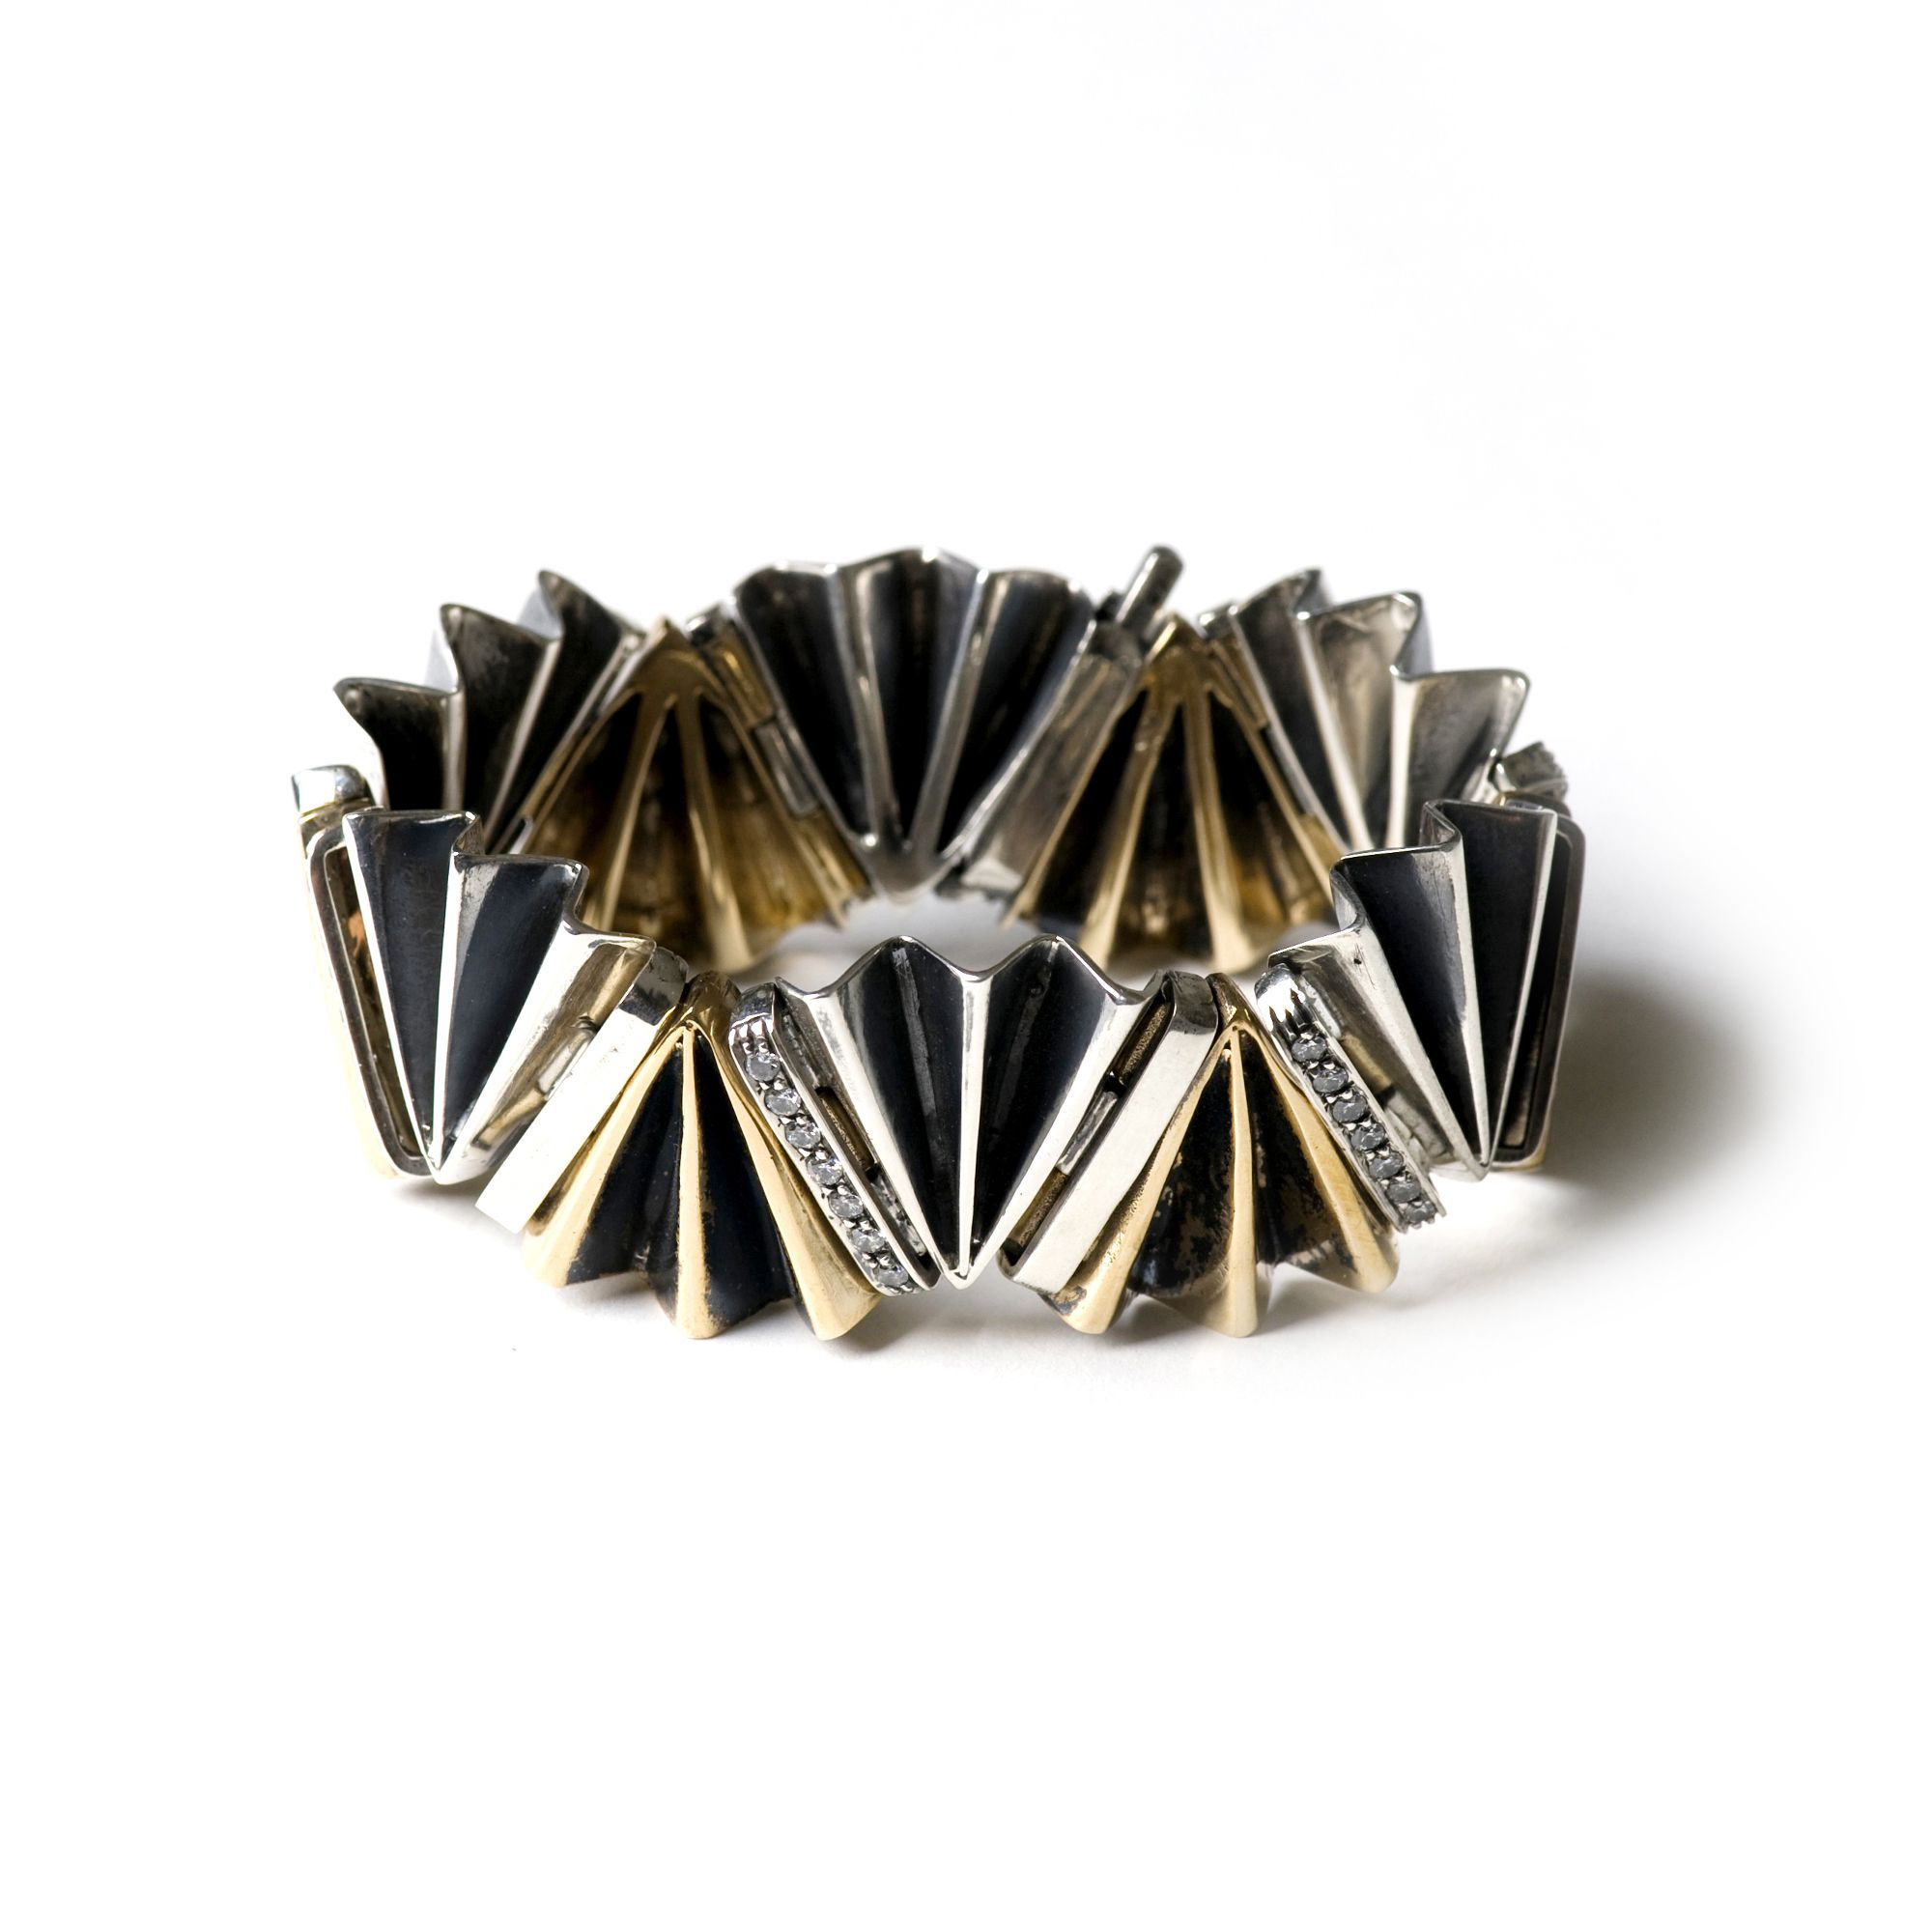 Bi-color 'fan' bracelet Bracelet in silver and bronze